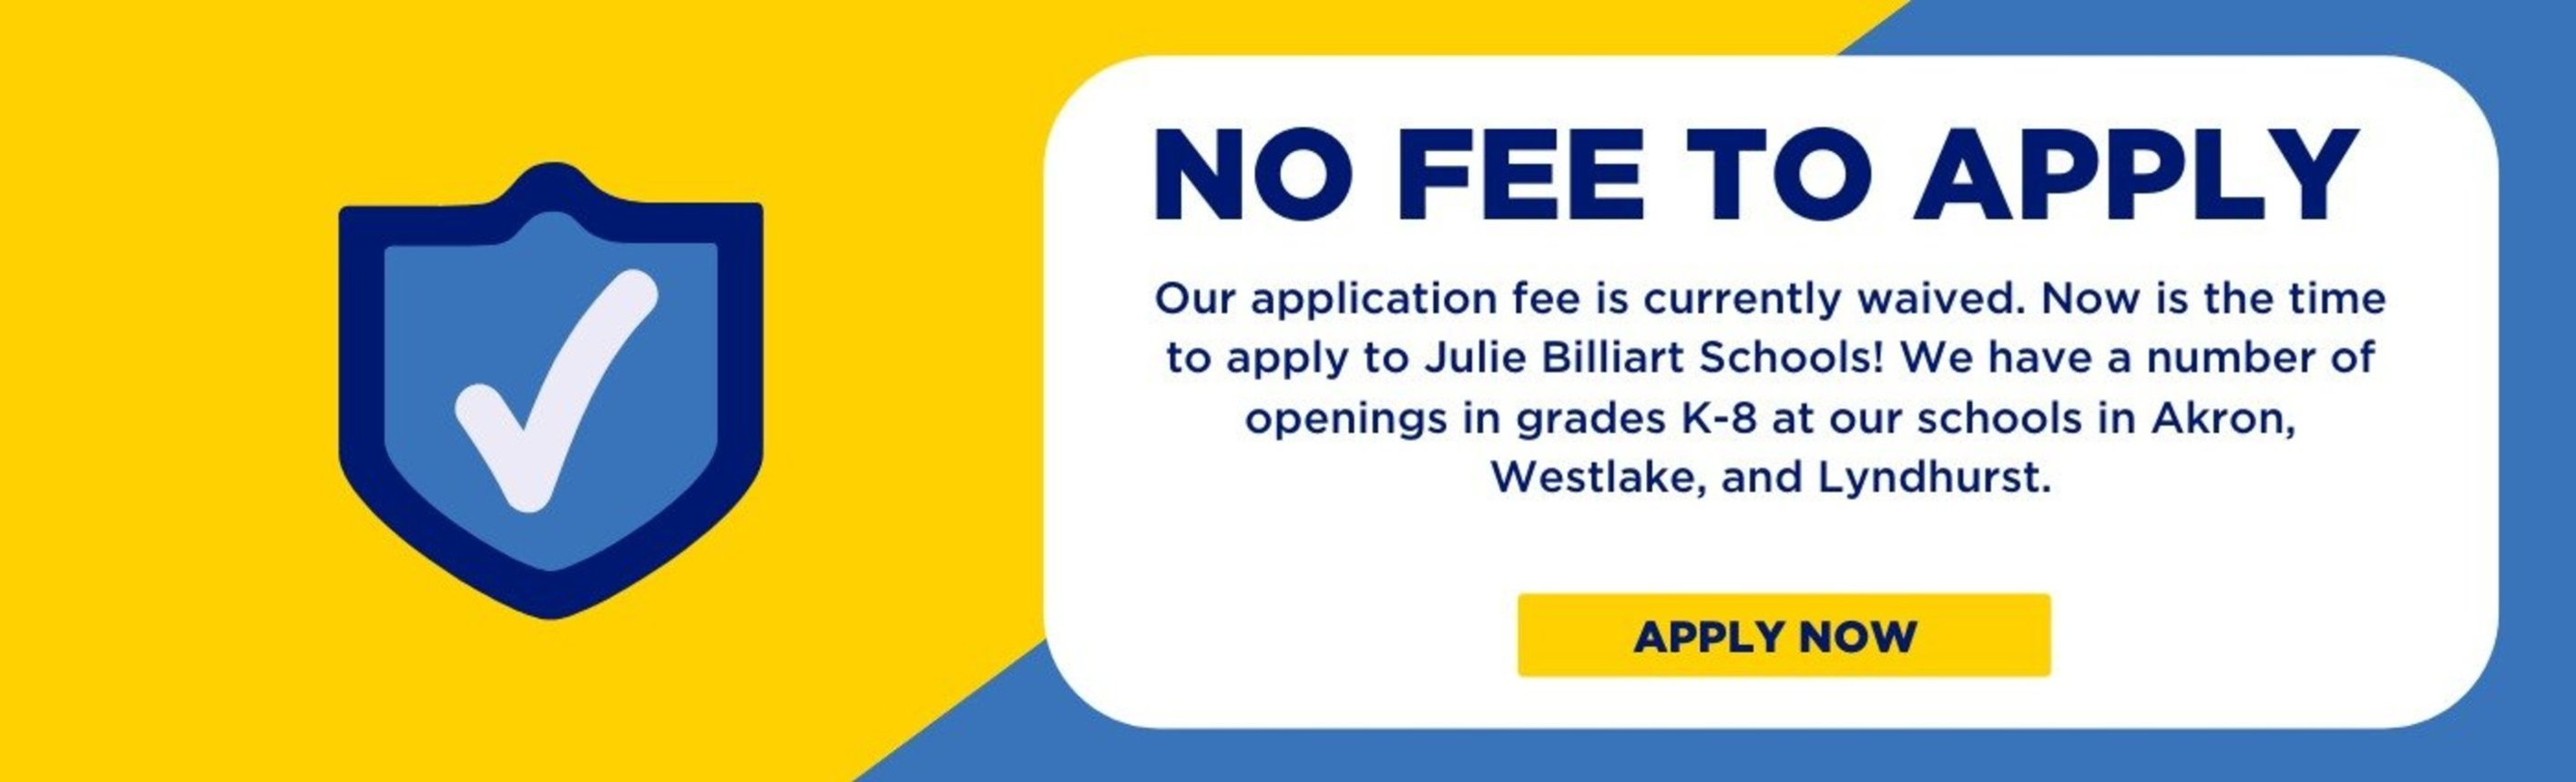 No Fee to Apply